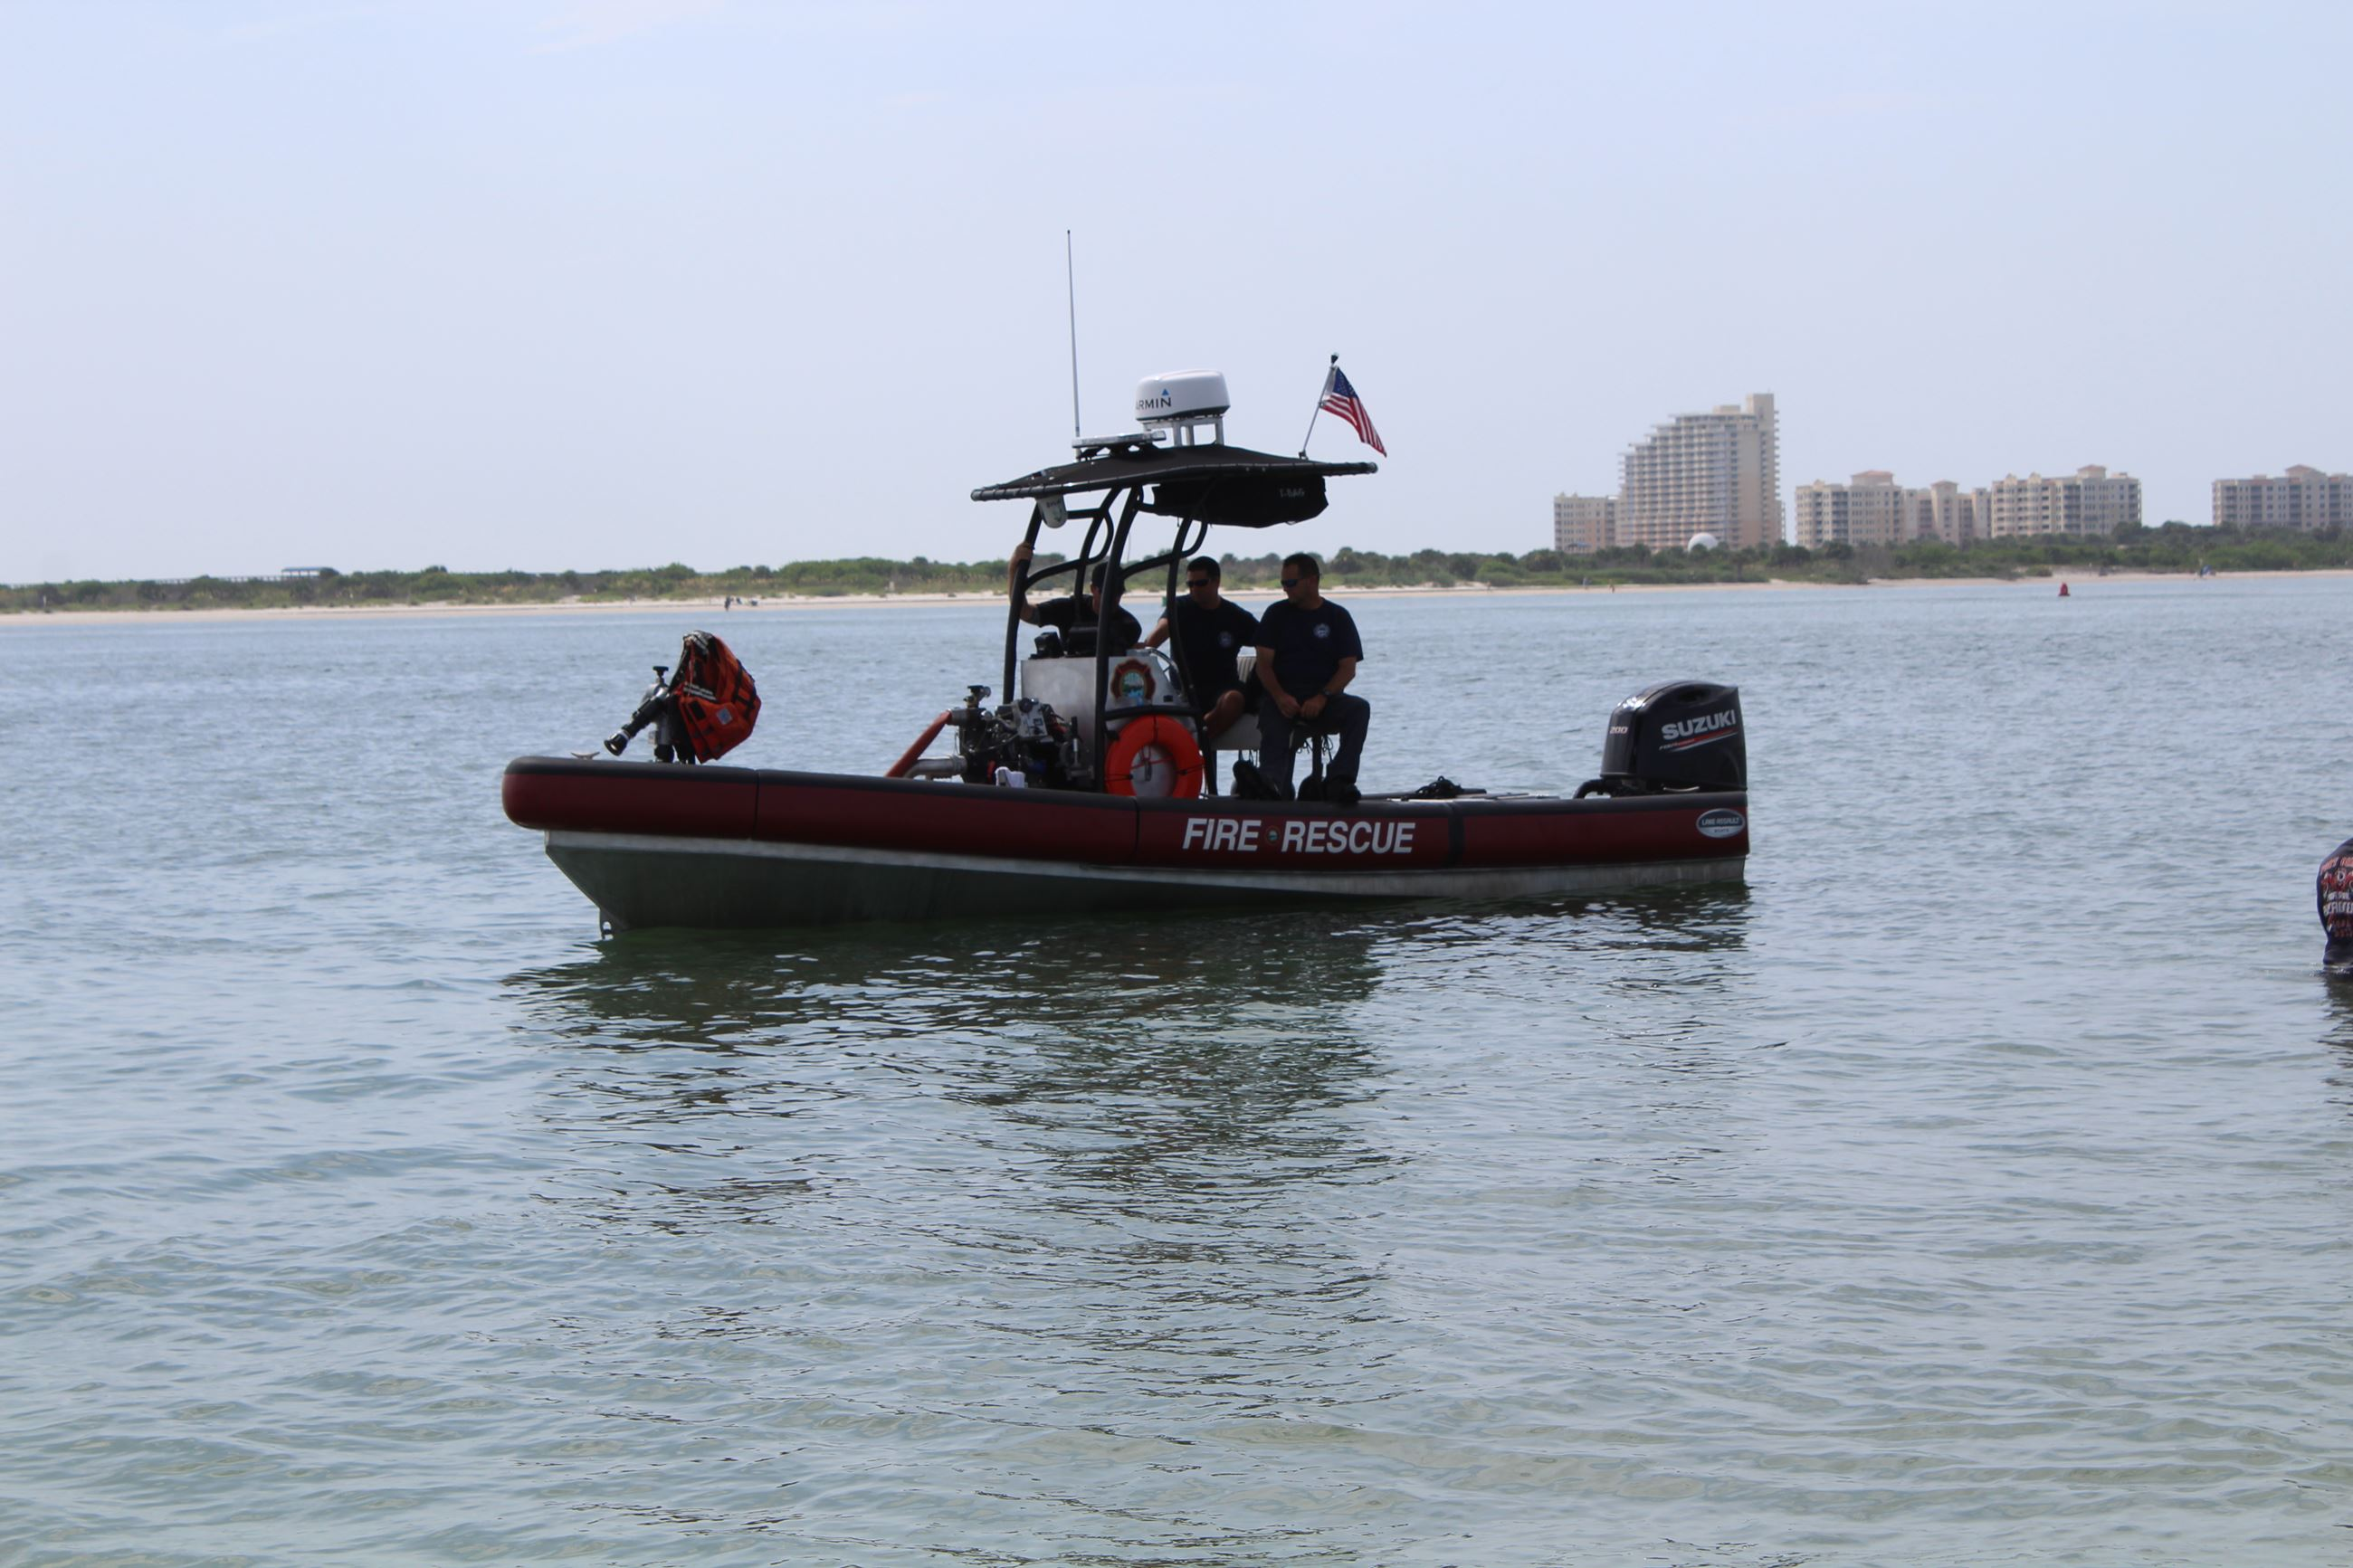 New Smyrna Beach Fire Rescue boat